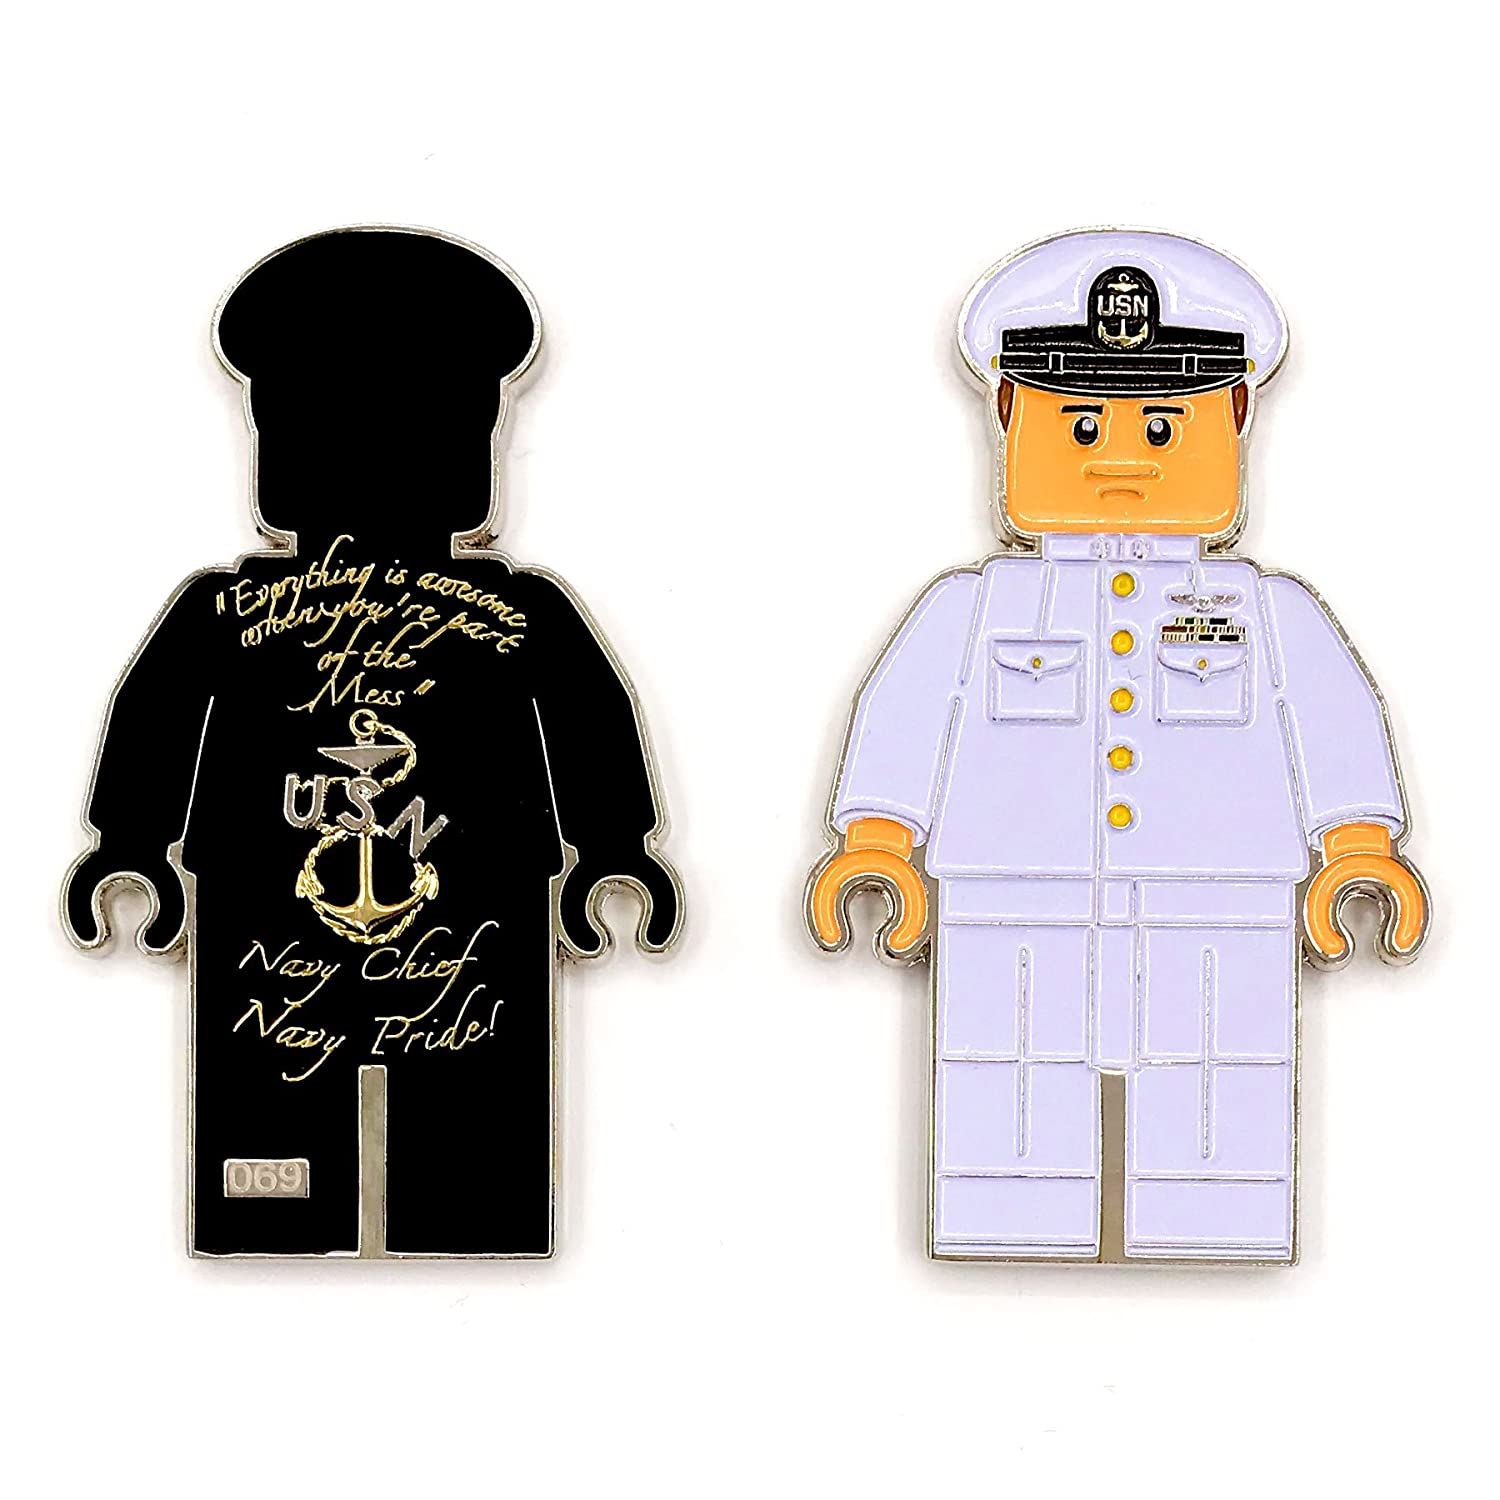 "US Navy Lego Male Officer in White Uniform, Chief Petty Officer (CPO) Chief Dress Mess ""Navy Chief, Navy Pride"" Challenge Coin M-WHT Emporium Royale"